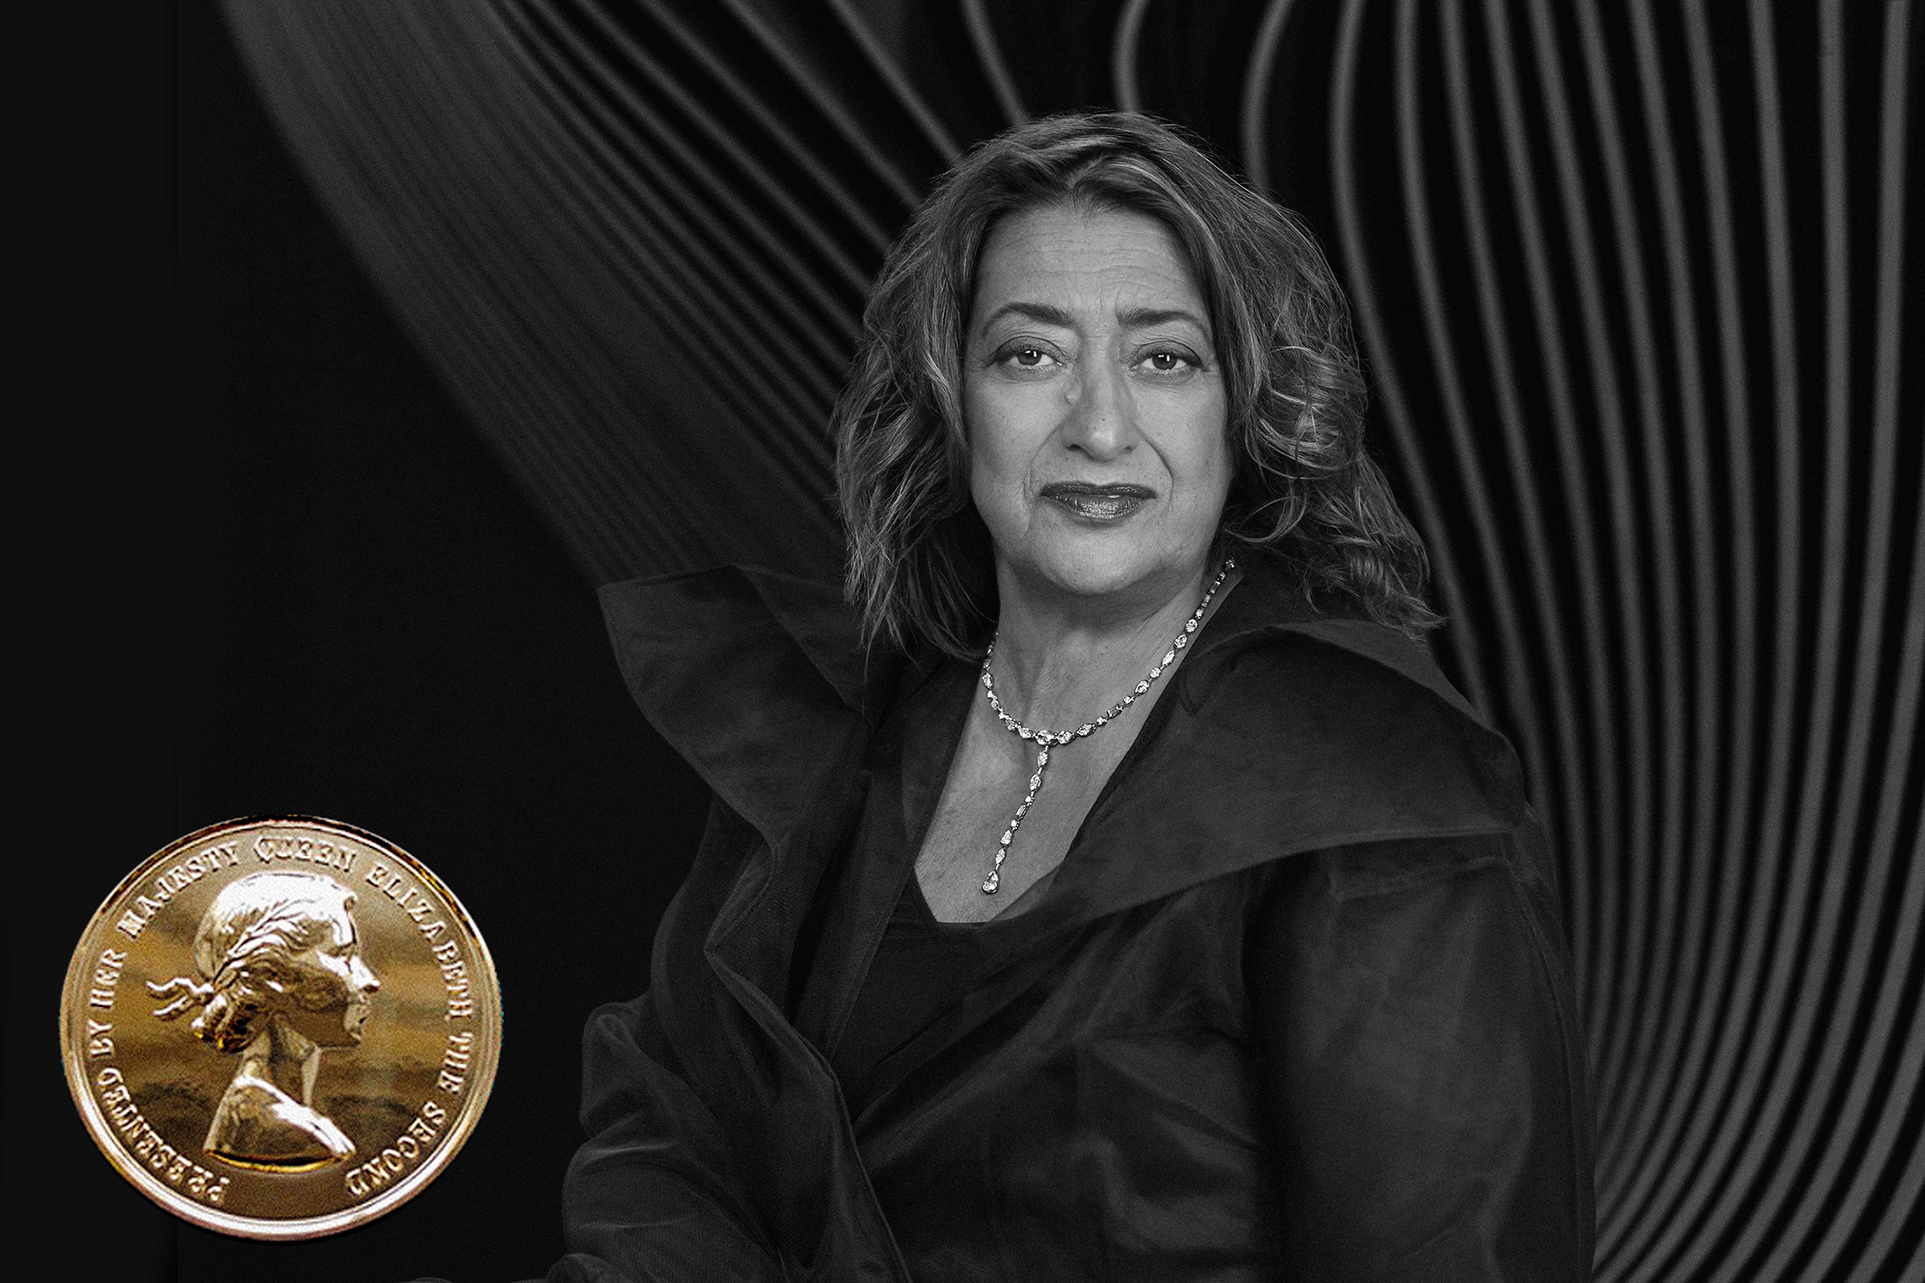 zaha hadid wins 2016 riba royal gold medal for architecture architect magazine award winners. Black Bedroom Furniture Sets. Home Design Ideas